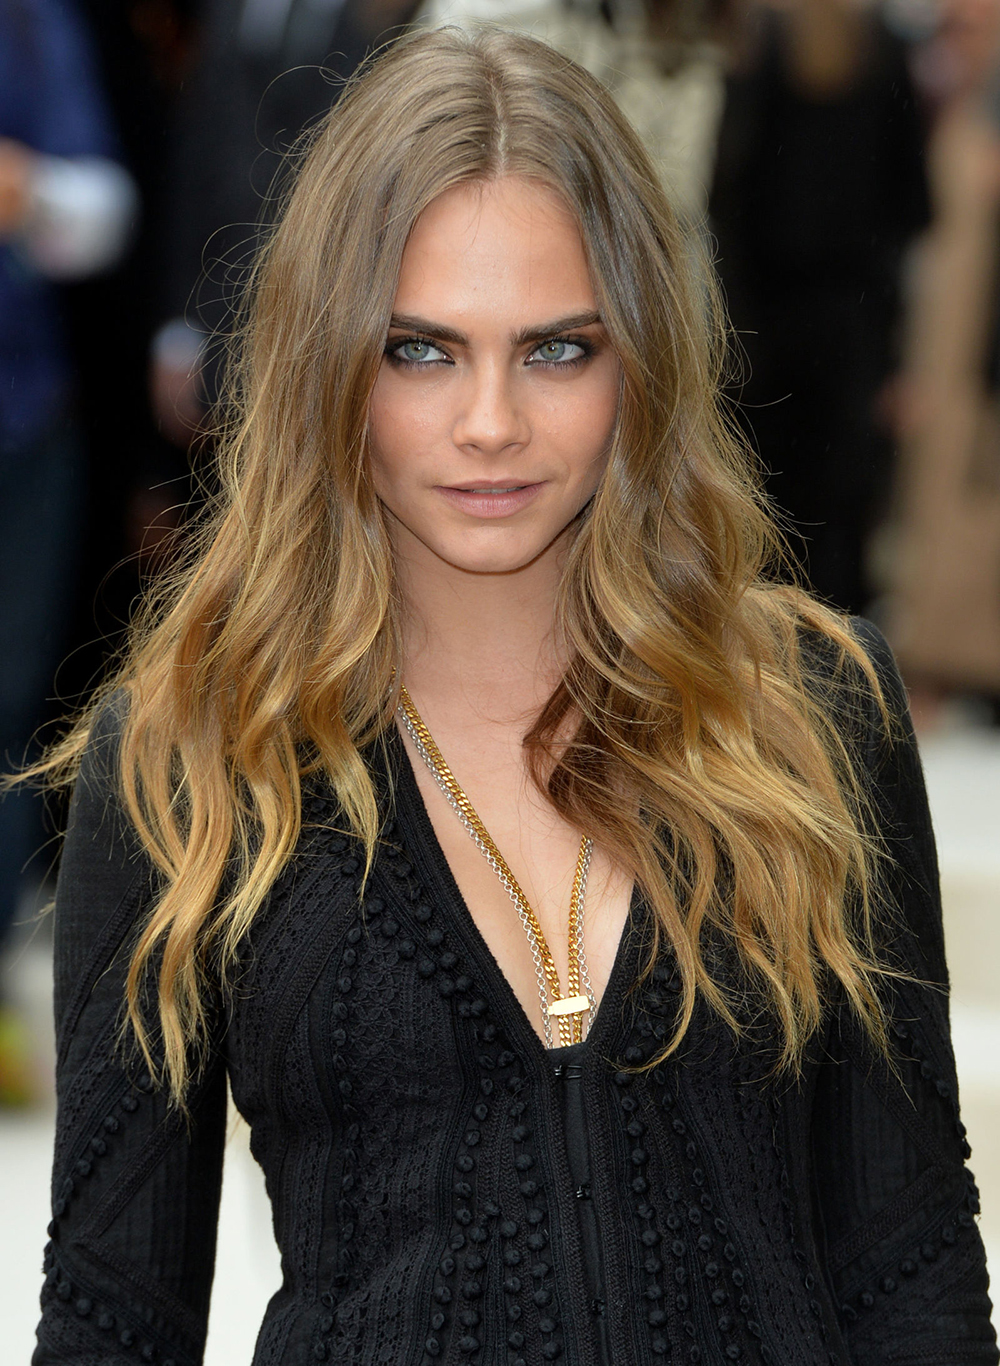 Cara Delevinge | Marie Claire - 8 Romantic Hairstyles for Fall